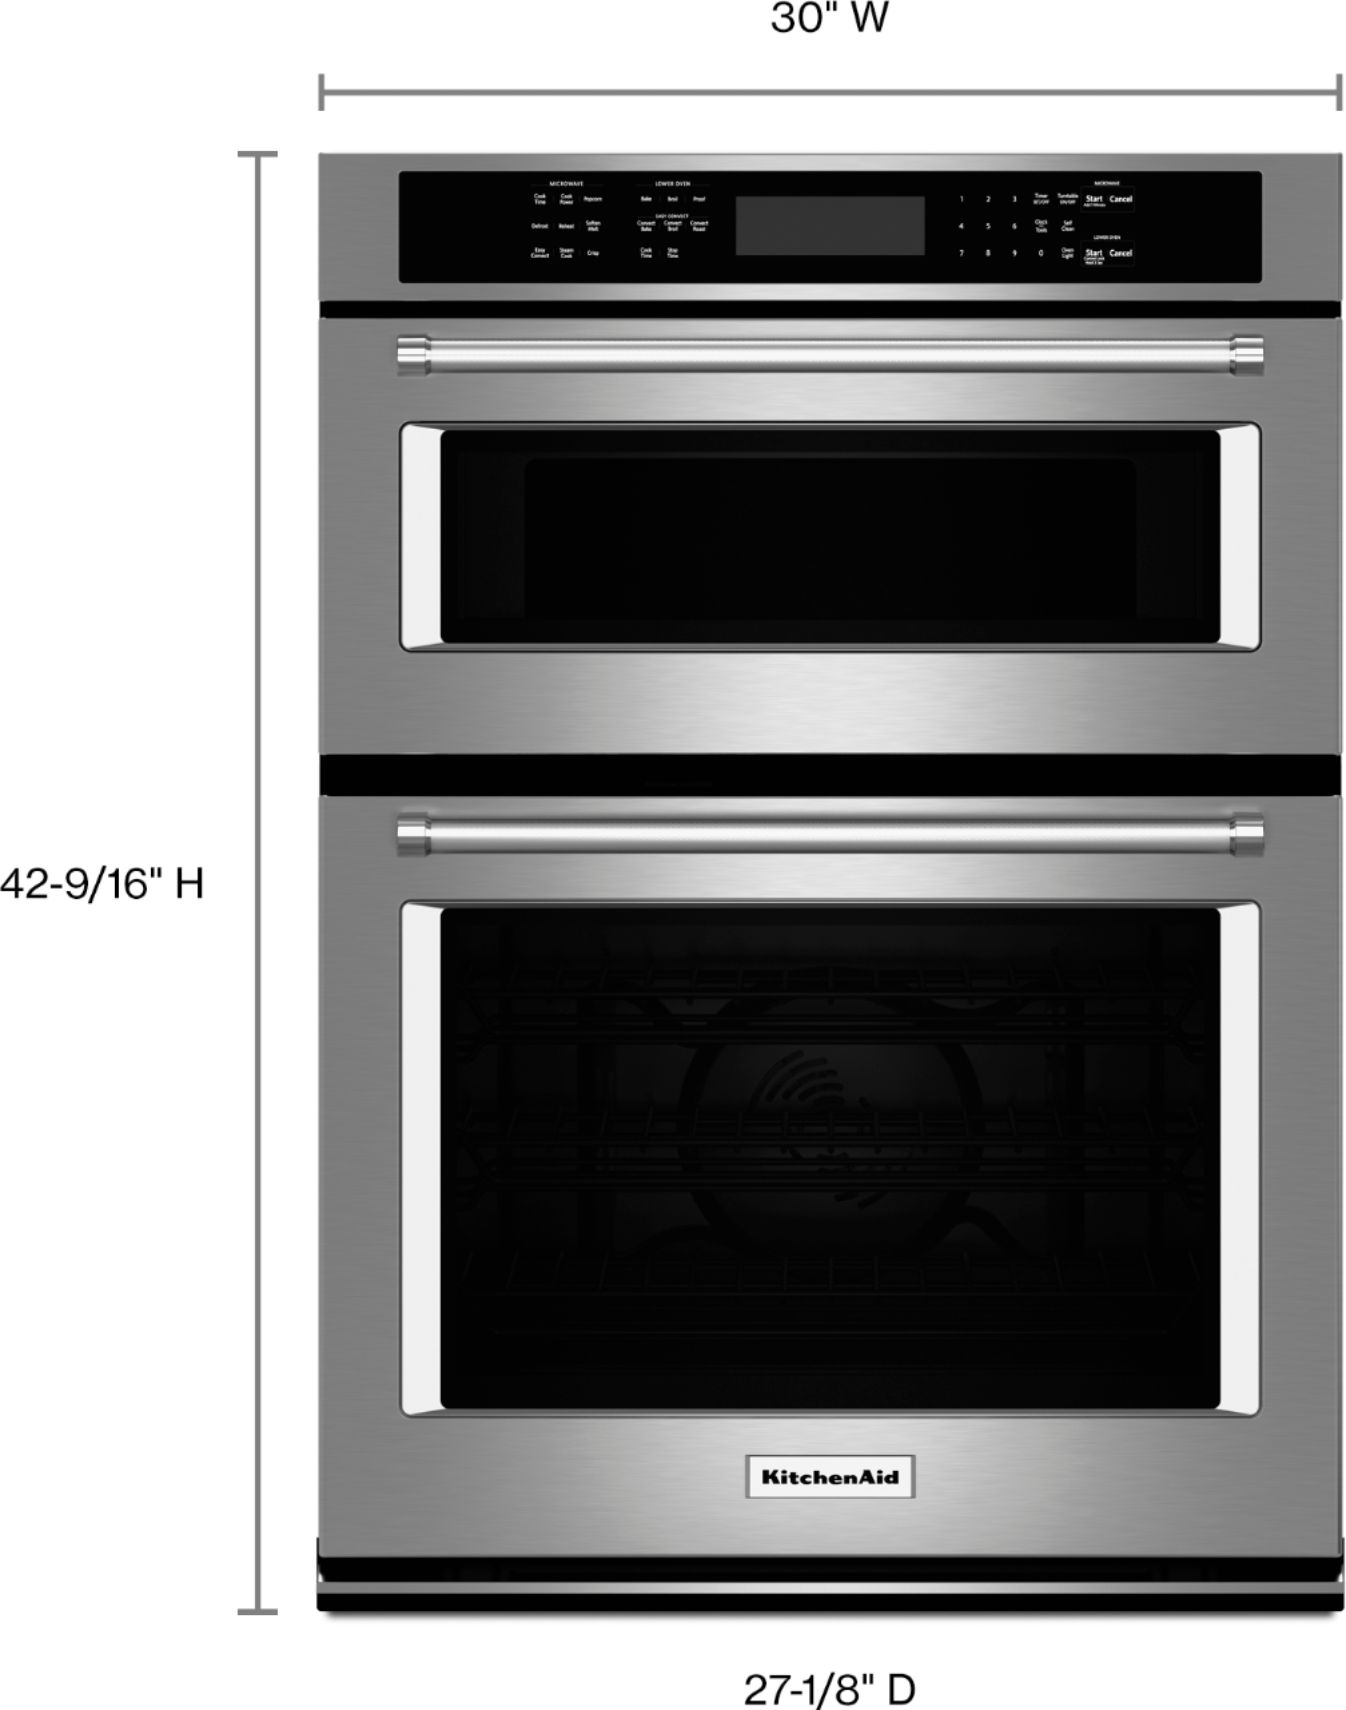 kitchenaid 30 single electric convection wall oven with built in microwave stainless steel